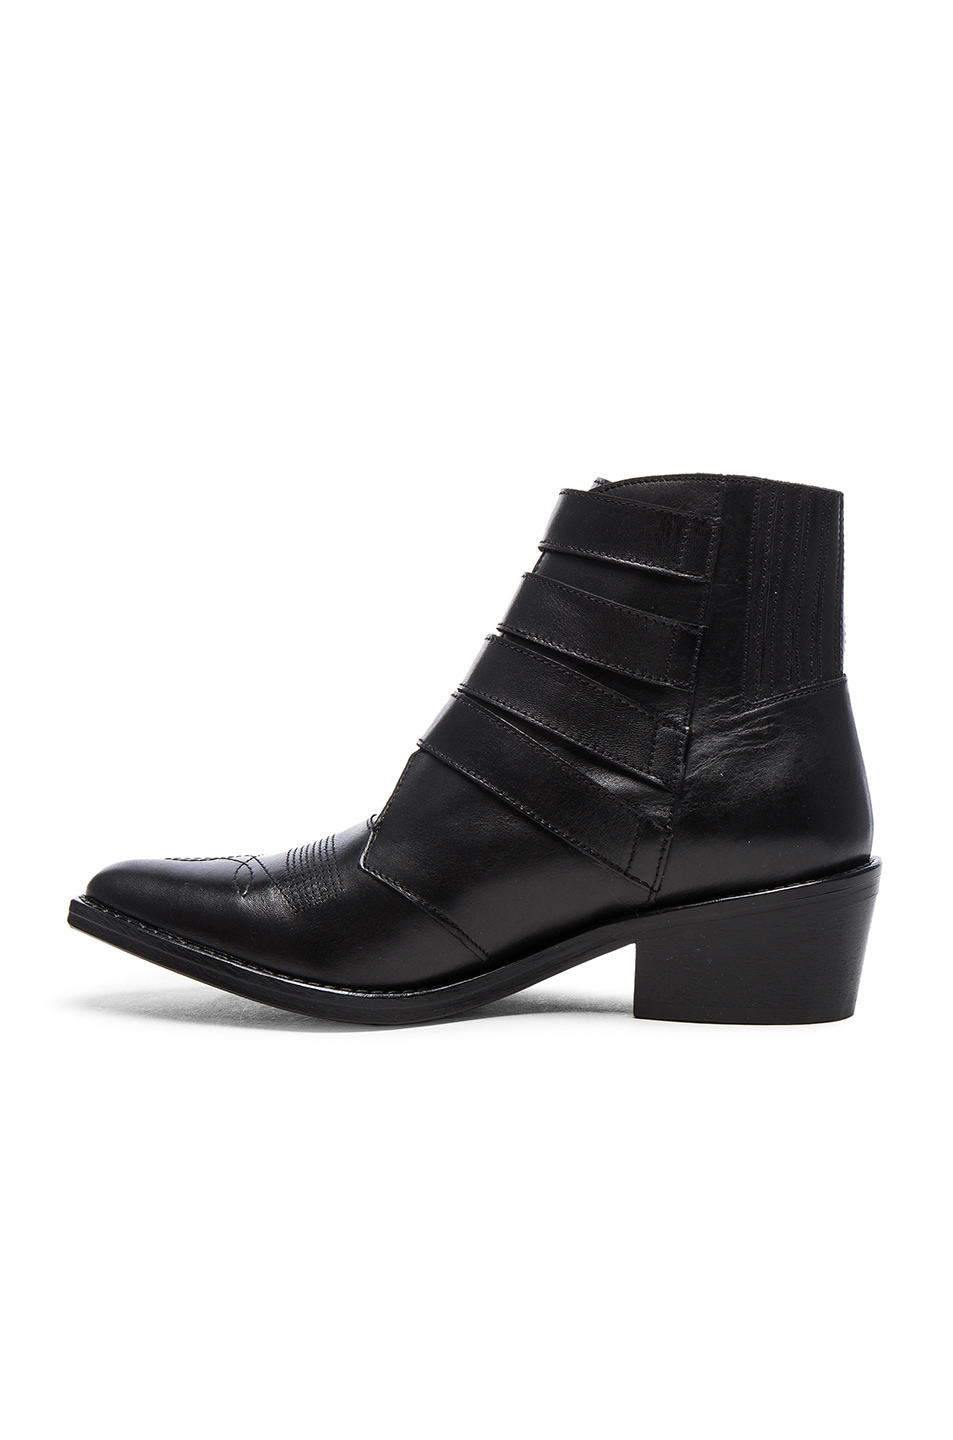 Image 5 of TOGA PULLA Buckled Leather Booties in Black Velvet